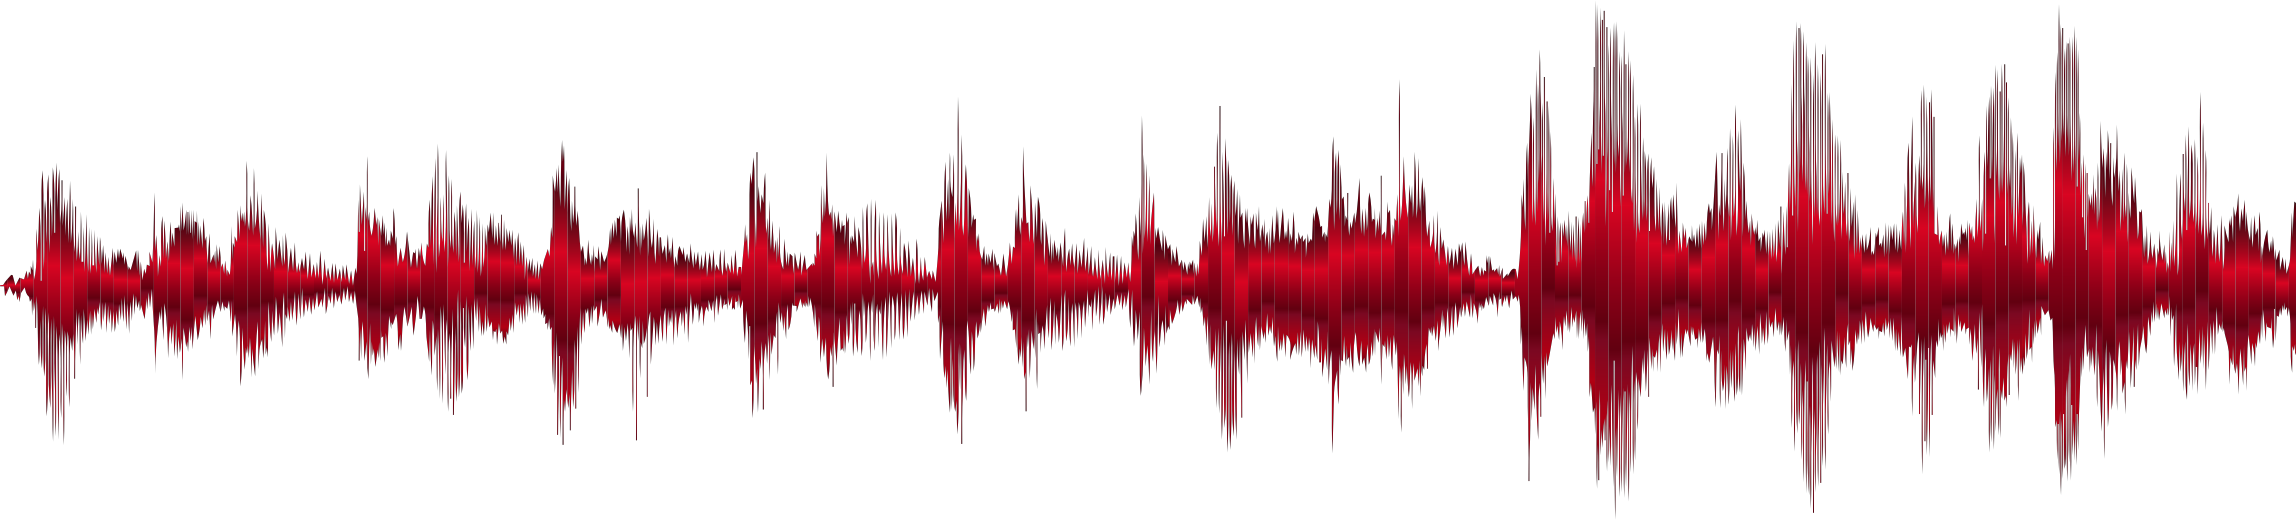 Crimson Sound Wave No Background by GDJ